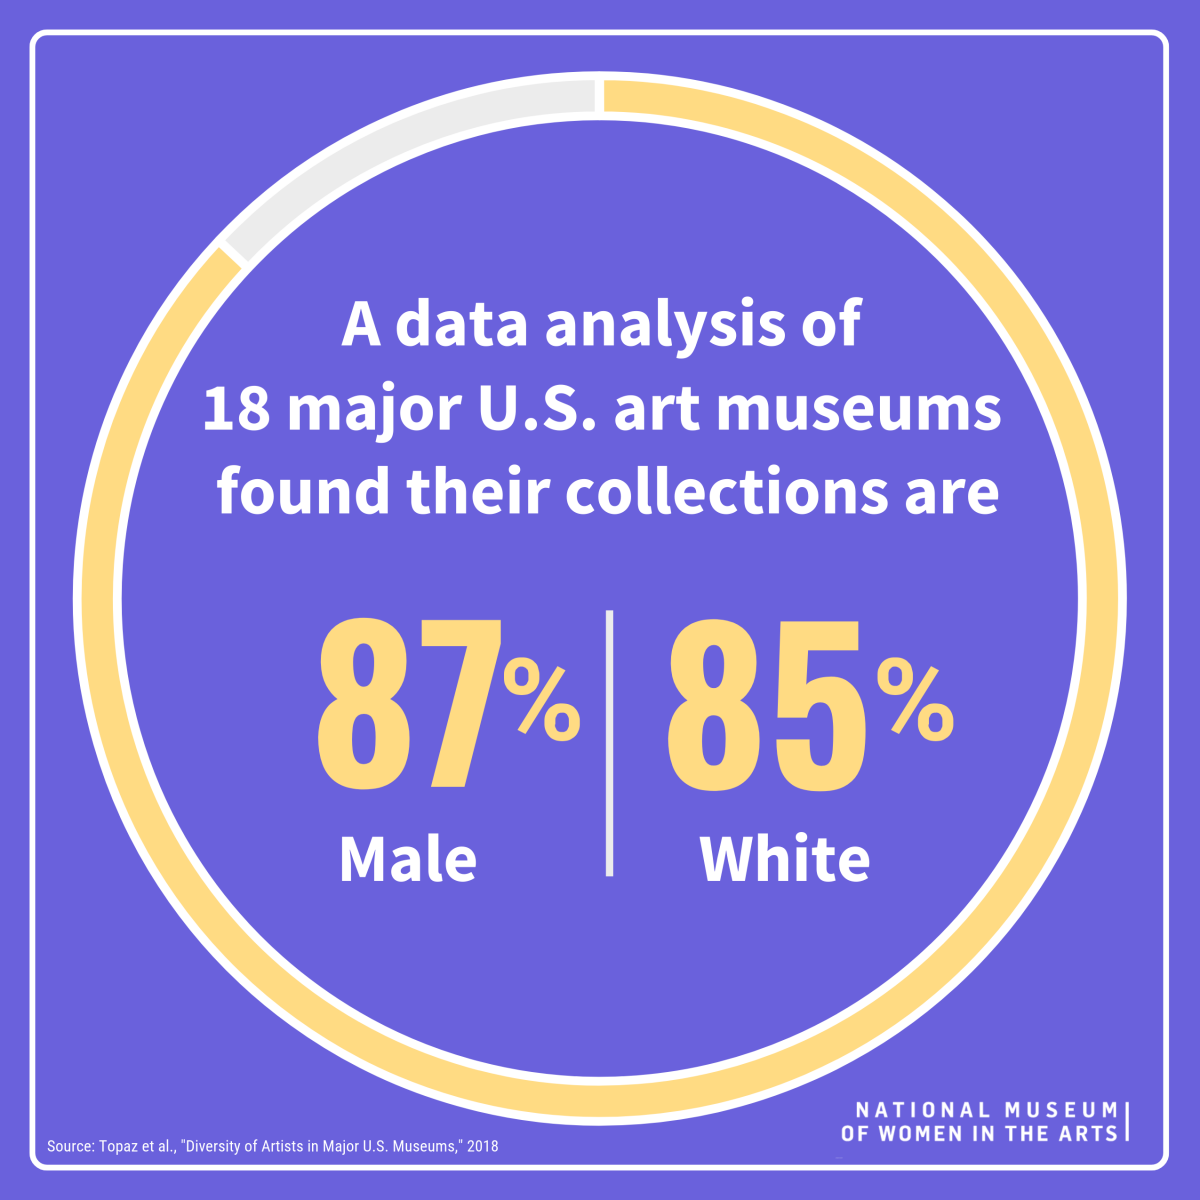 Infographic displays text 'A data analysis of 18 major U.S. art museums found their collections are 87% Male and 85% White'